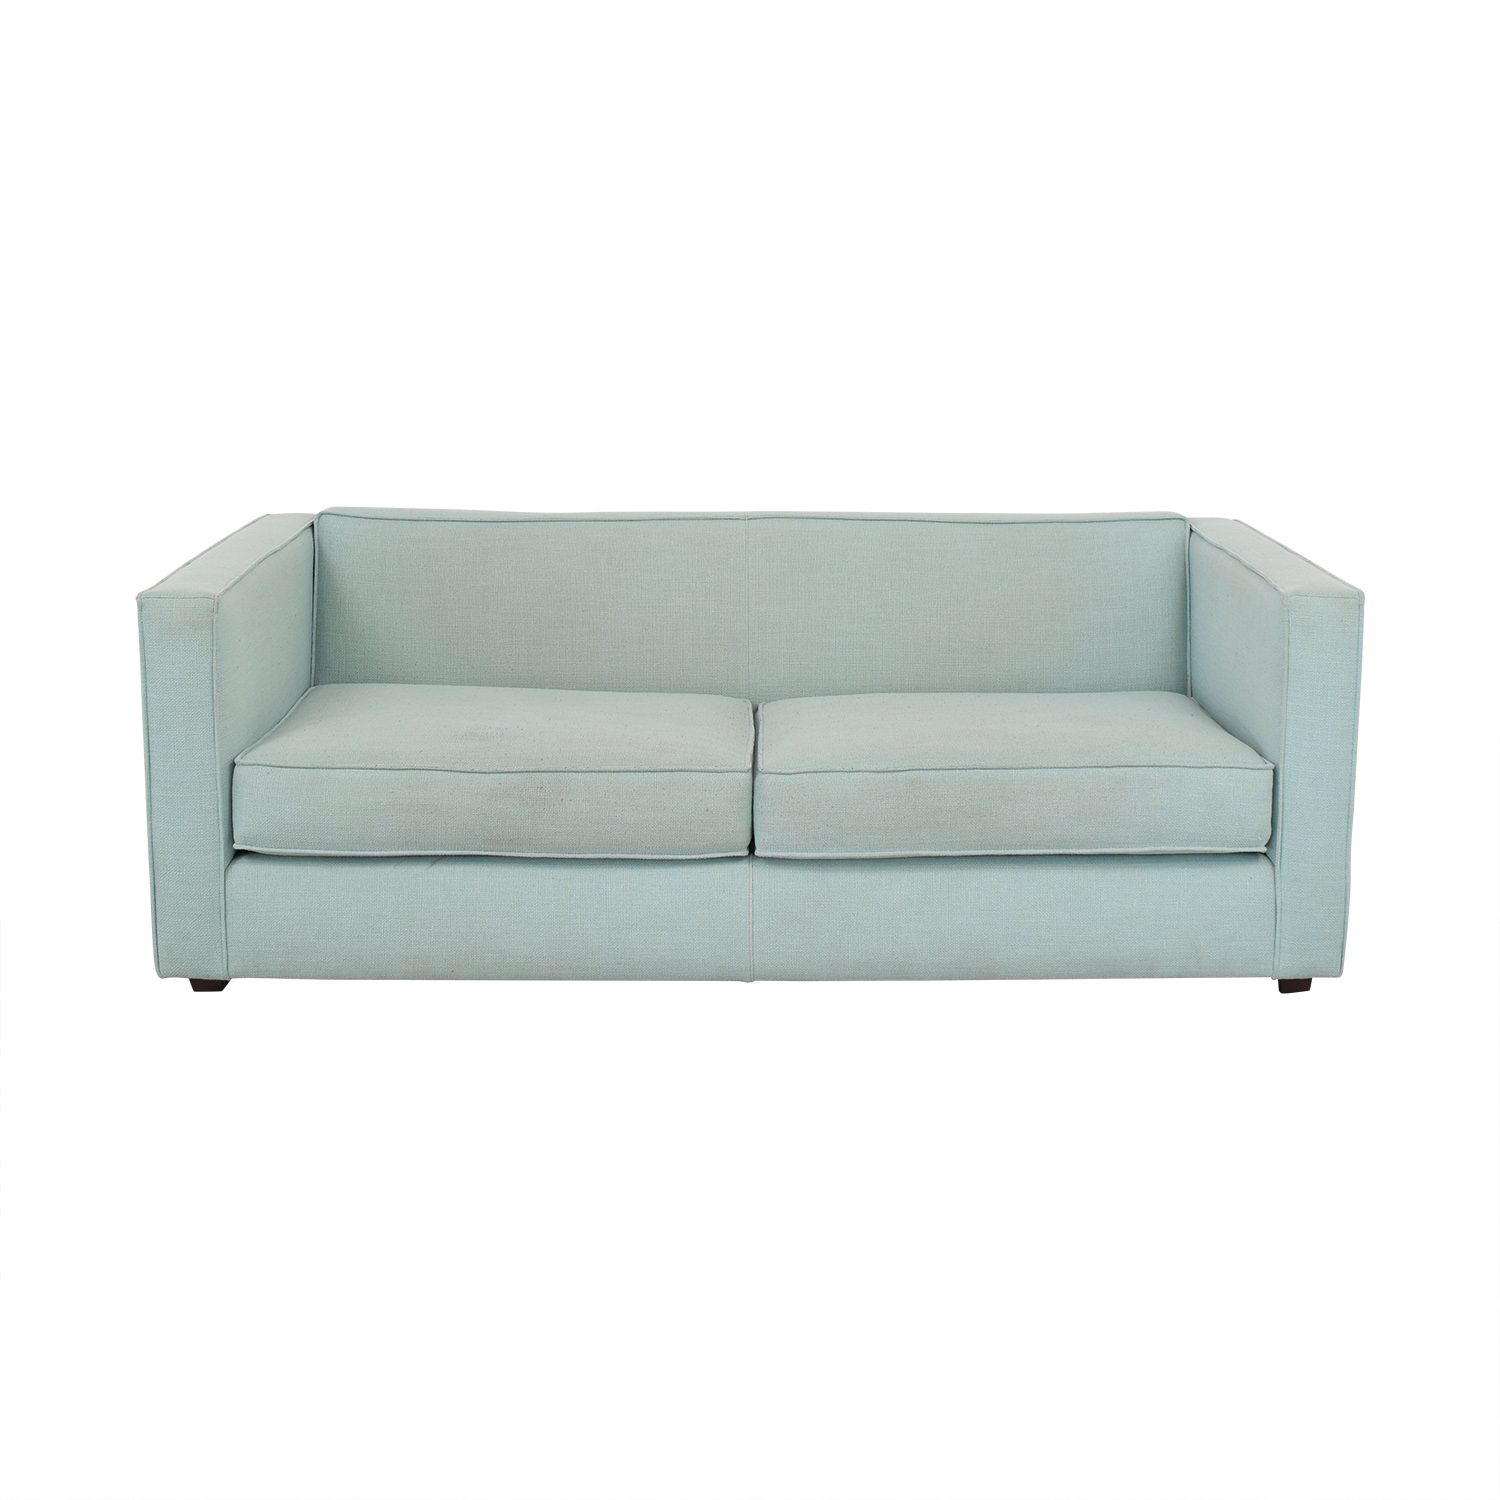 CB2 CB2 Club Sofa on sale